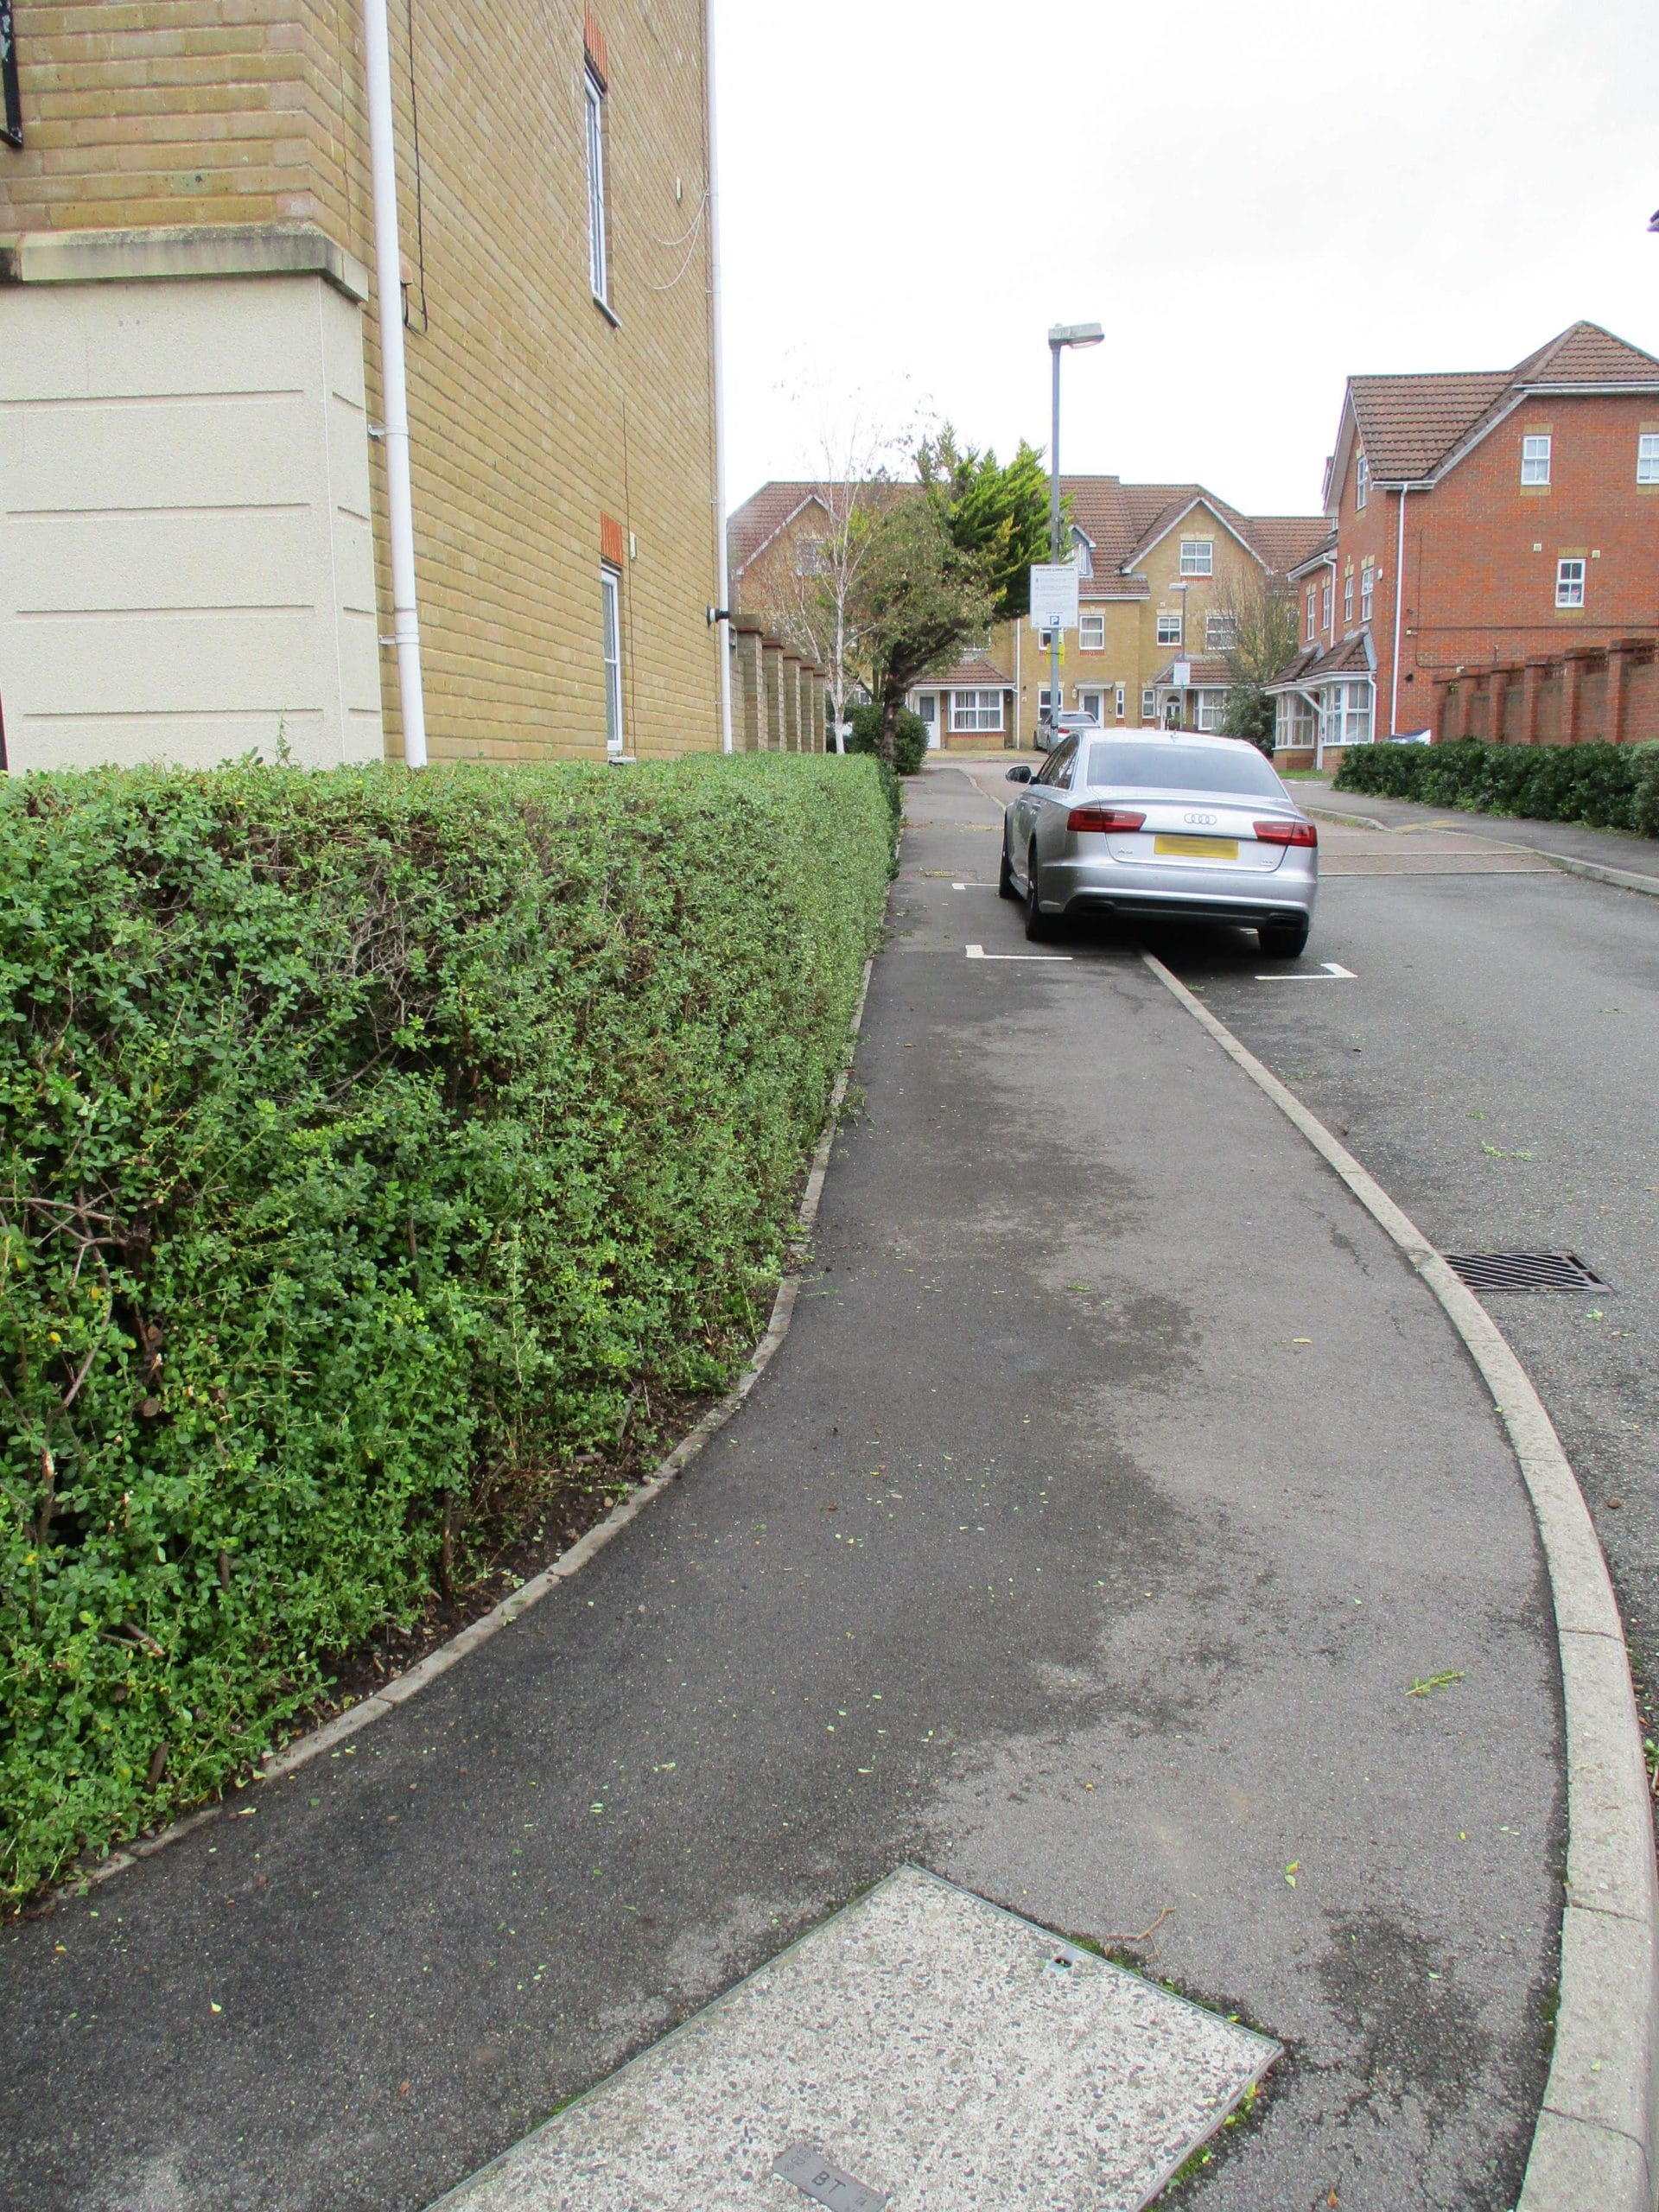 The hedge has recovered and is no longer blocking the footpath.